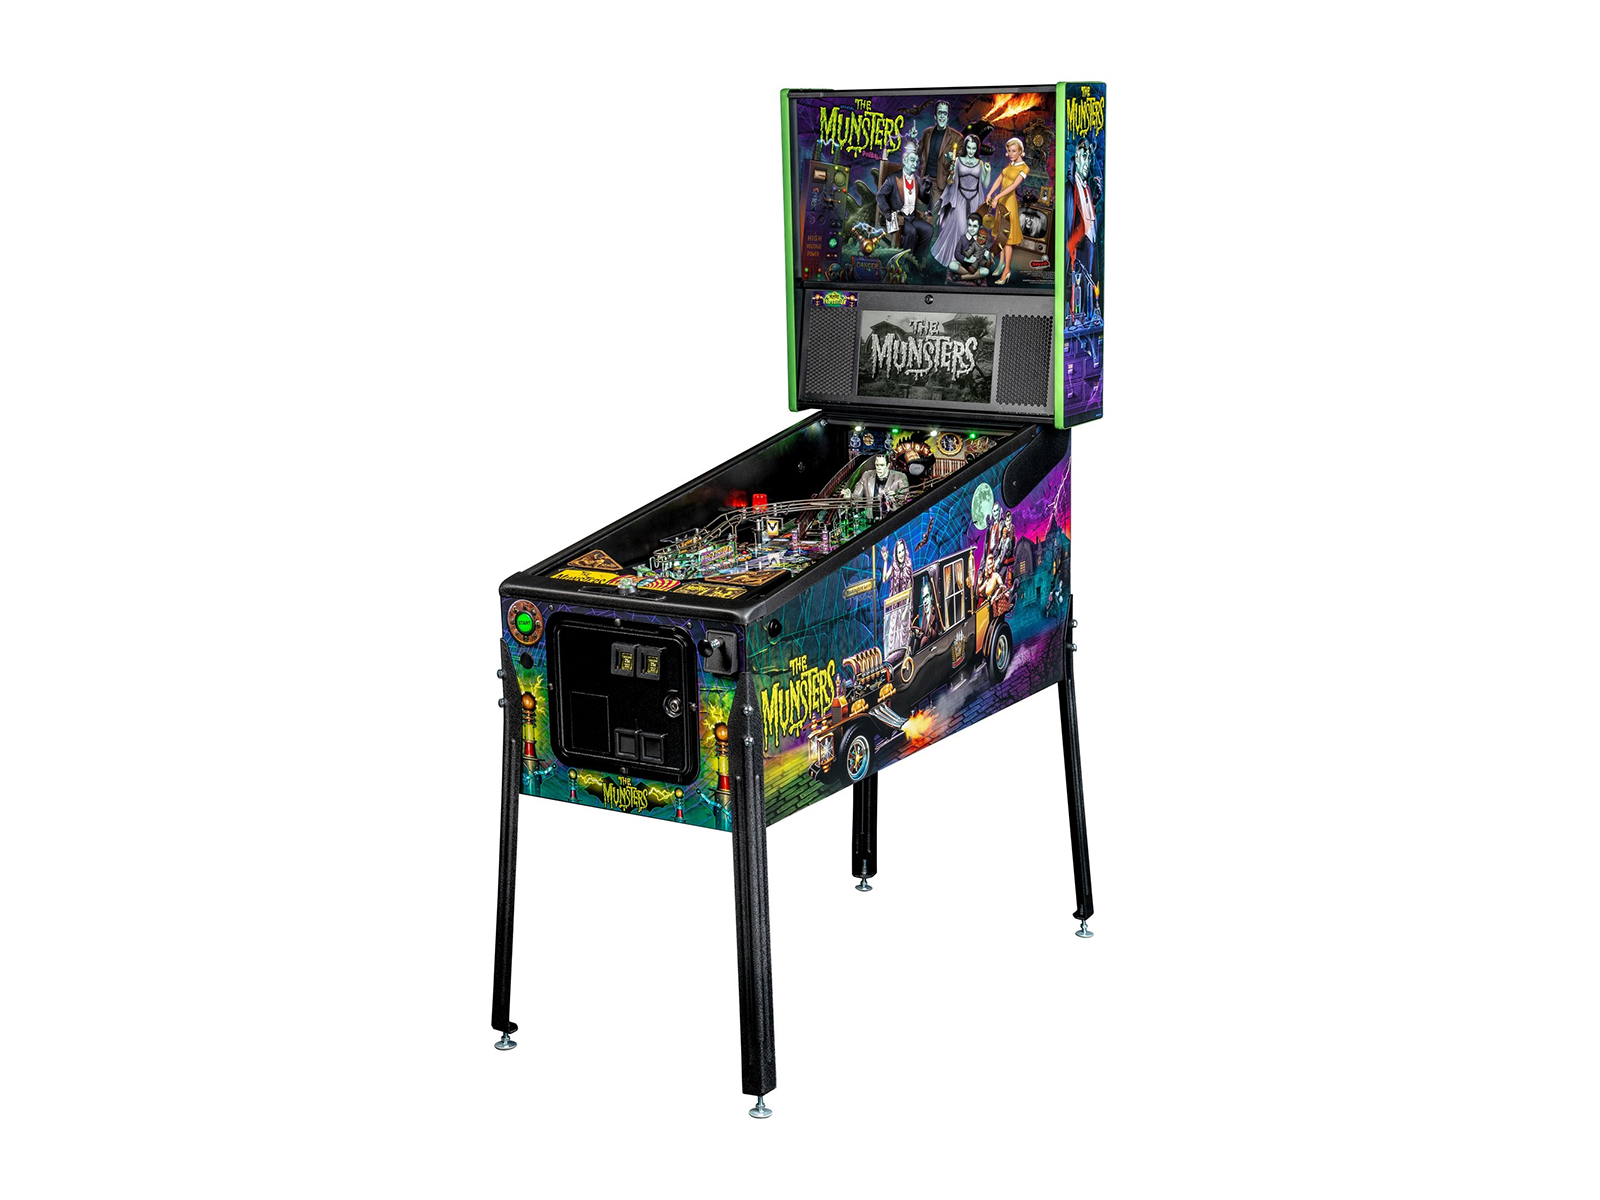 THE MUNSTERS PINBALL BY STERN PINBALL | Electrocoin - Expanding